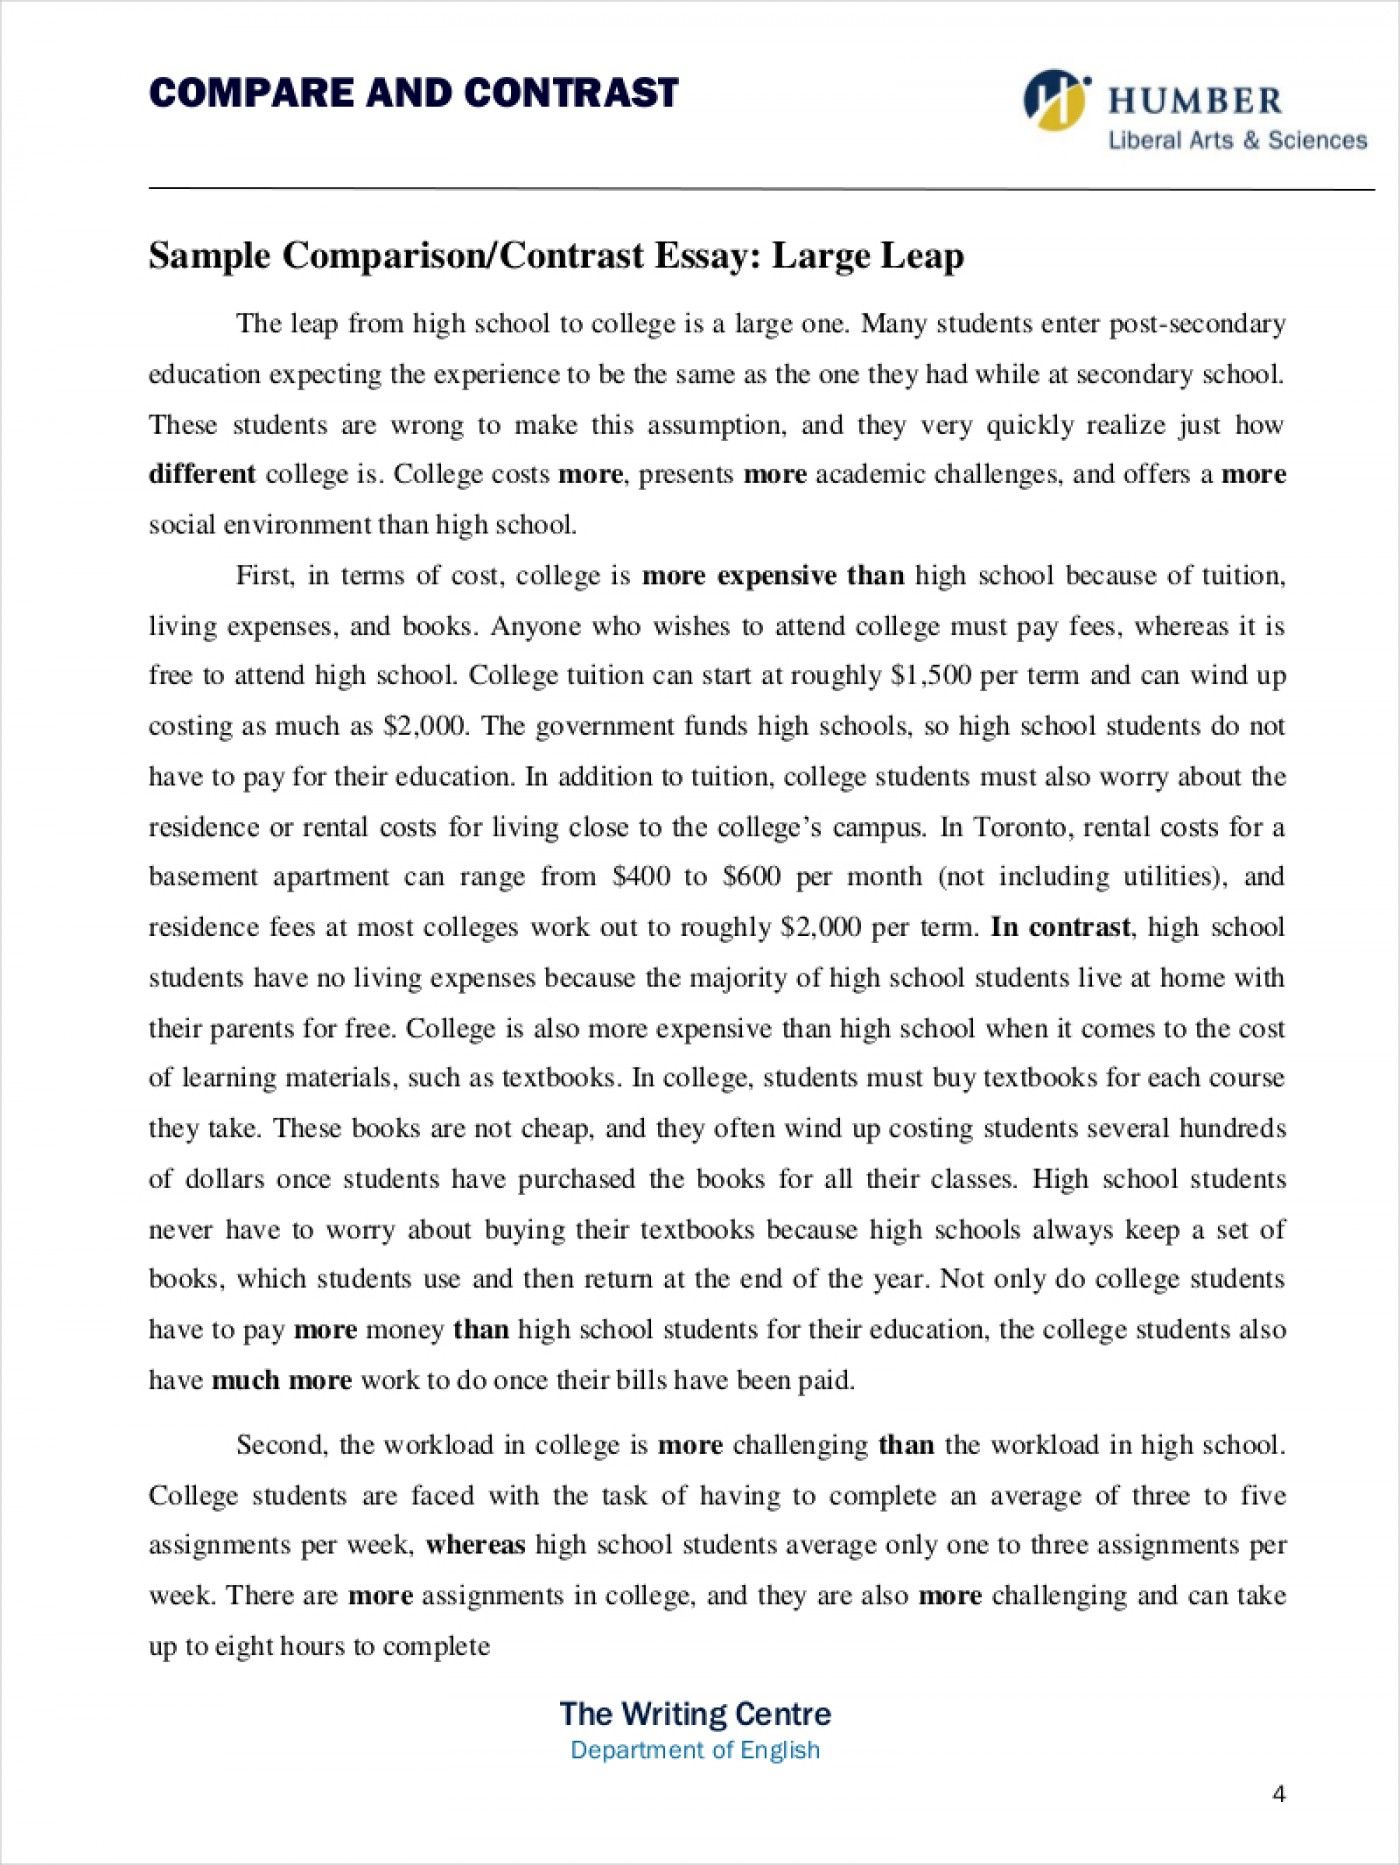 014 How To Write Compare And Contrast Essay Example Comparative Samples Free Pdf Format Download Throughout Examples Comparison Thesis Coles Thecolossus Co Within Ex Outstanding A Outline Powerpoint Introduction 1400